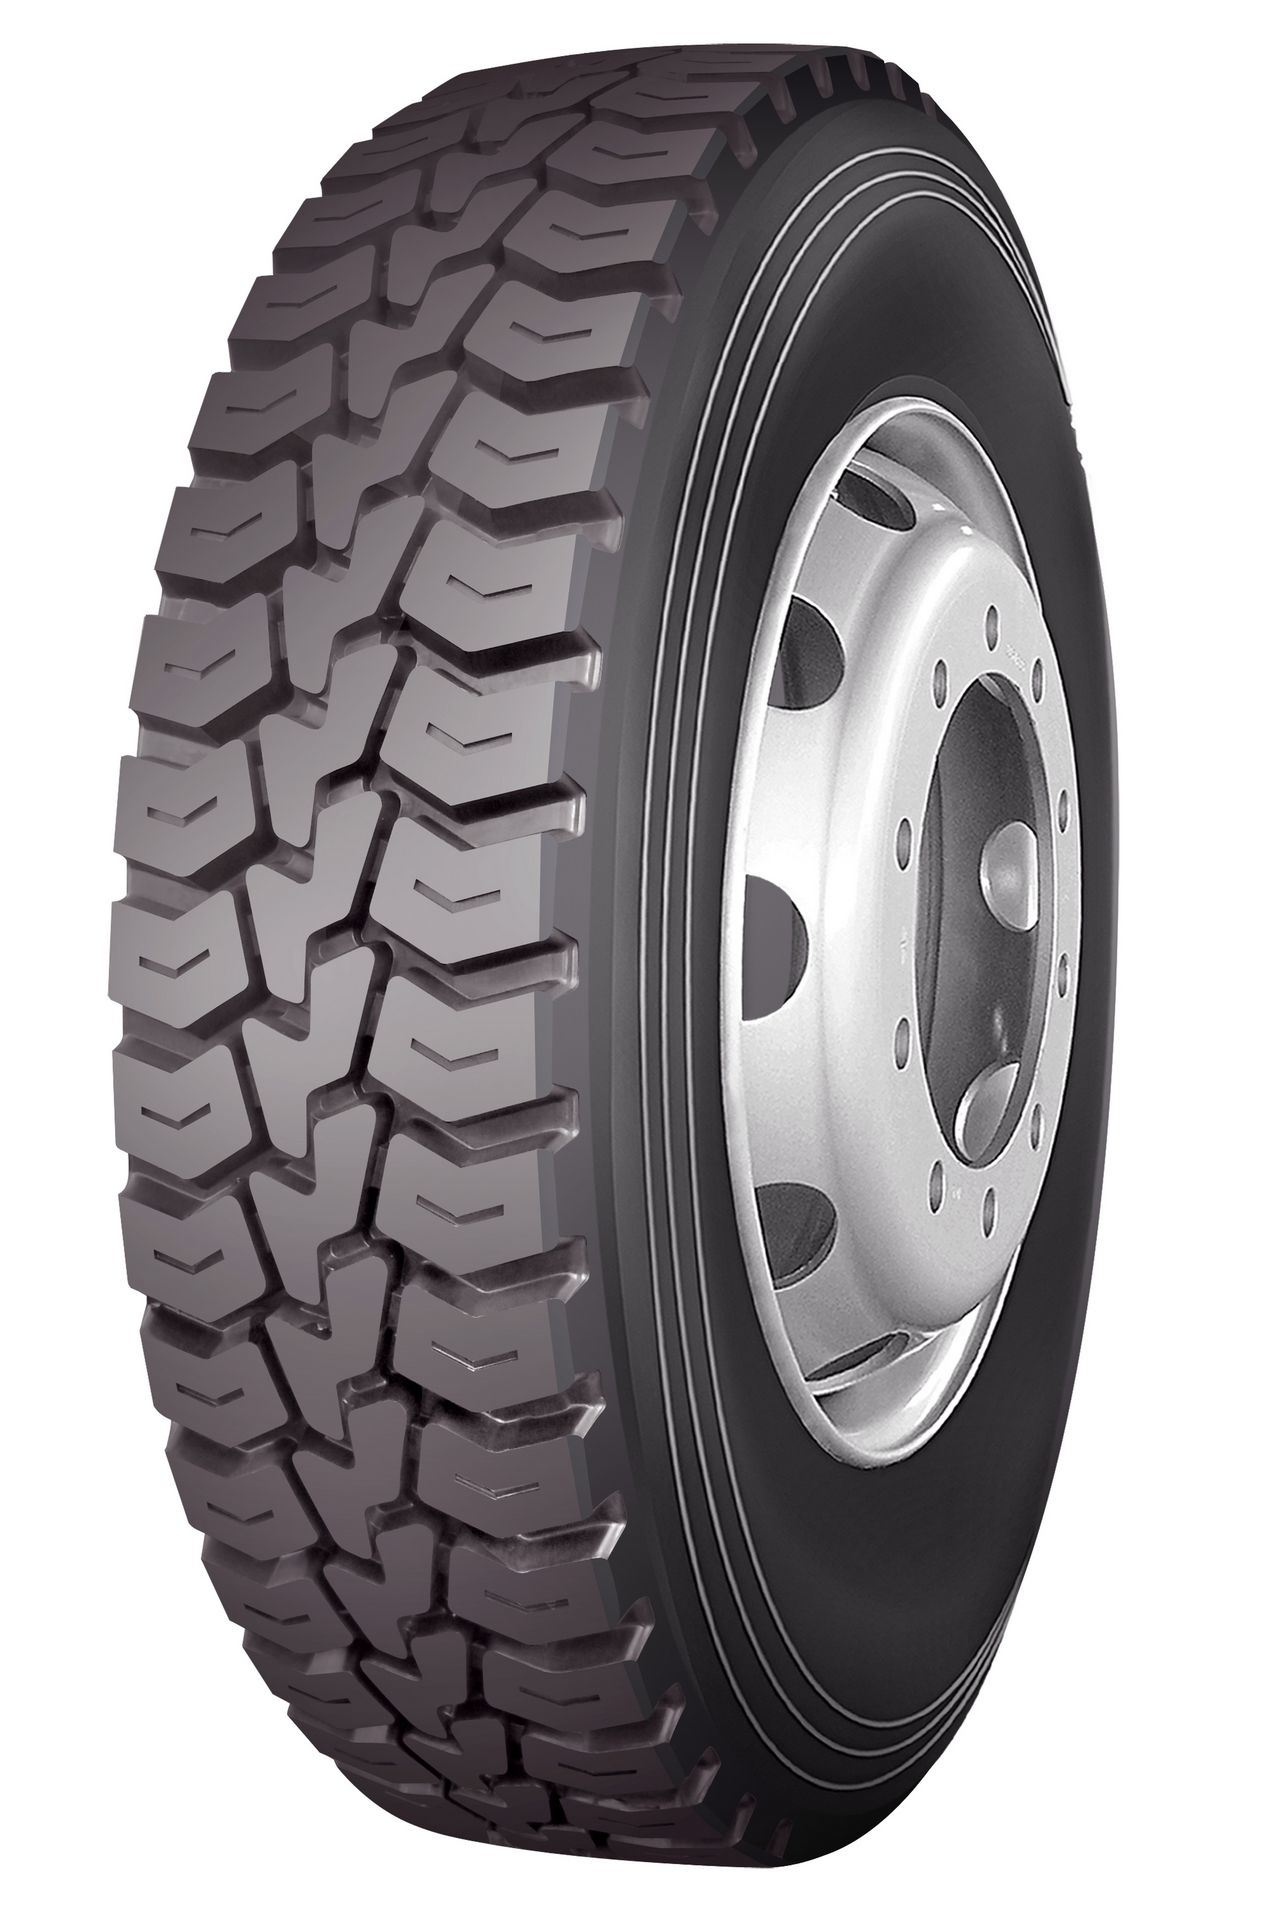 Oil Field Tires and Mining Tires for Bad Road Condition (13R22.5, 11R22.5, 12R22.5, 295/80R22.5)